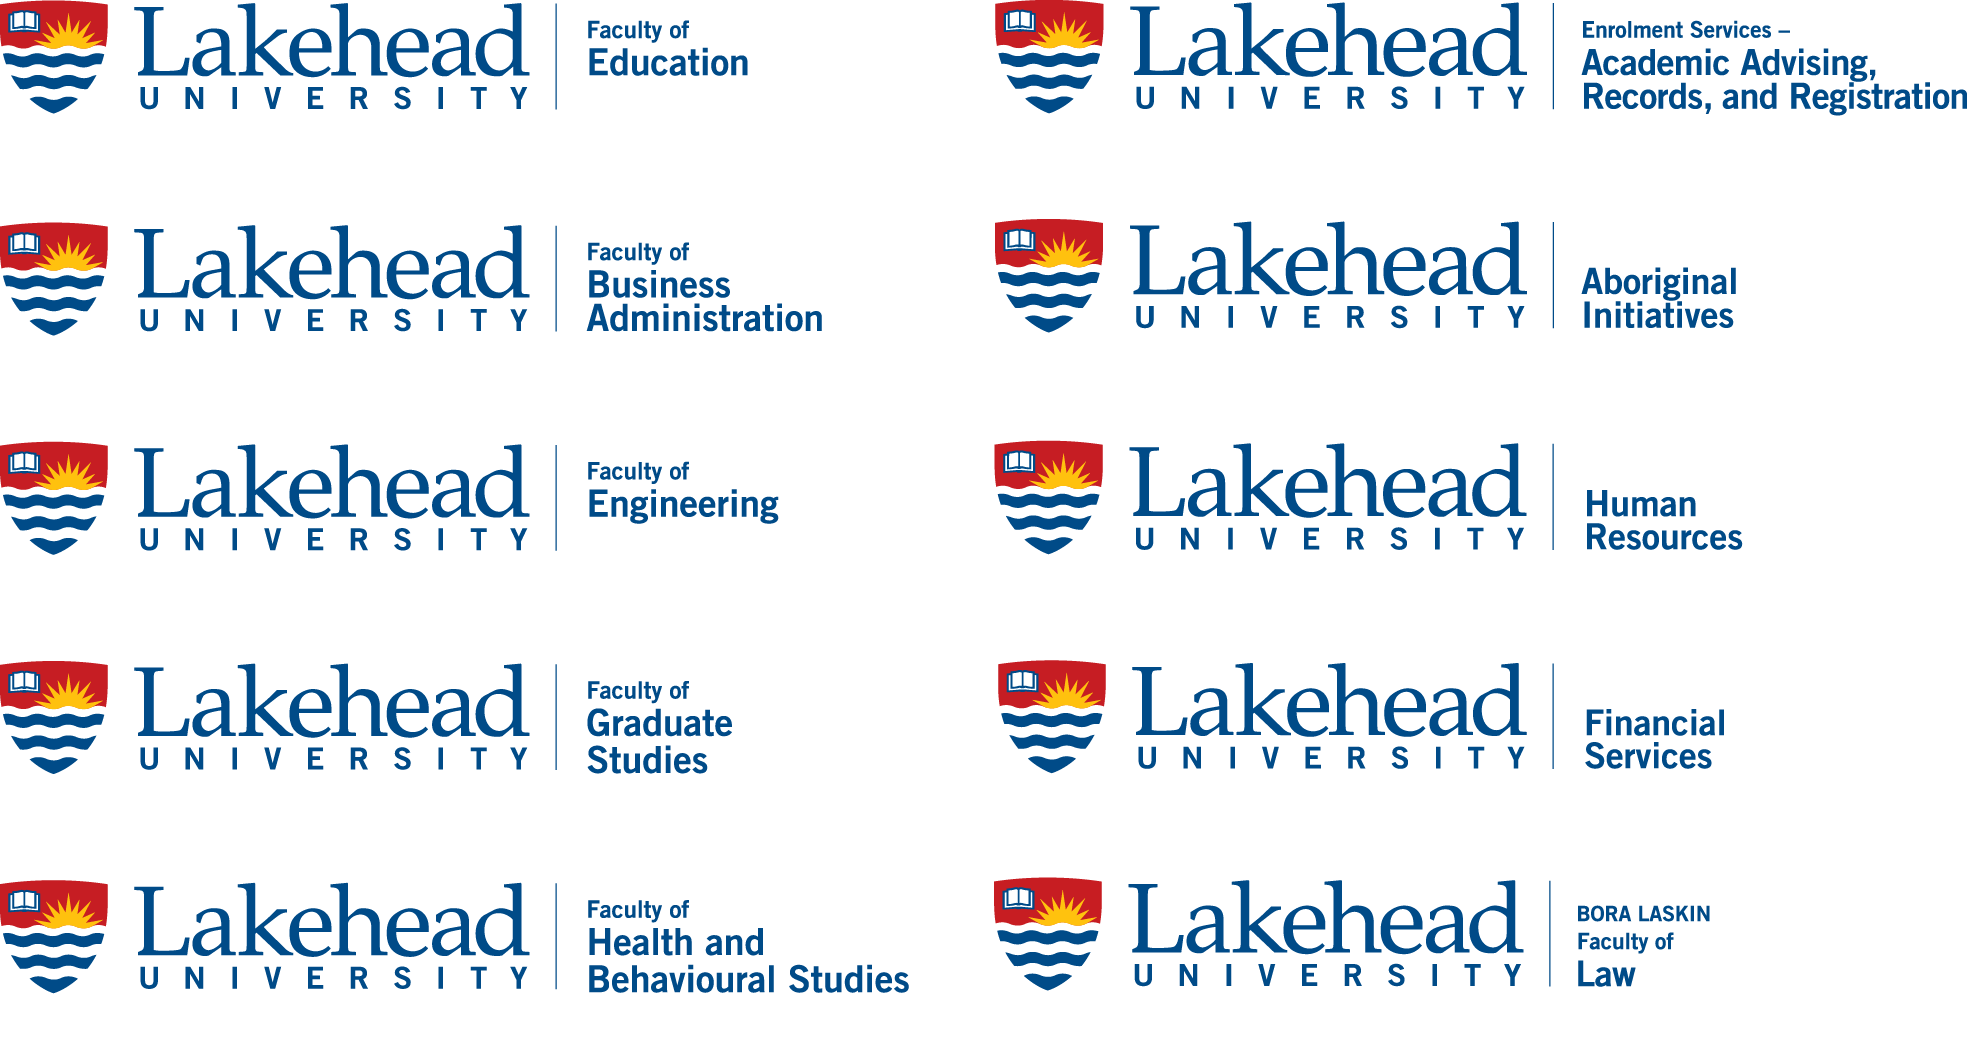 Lakehead University Faculty Identities